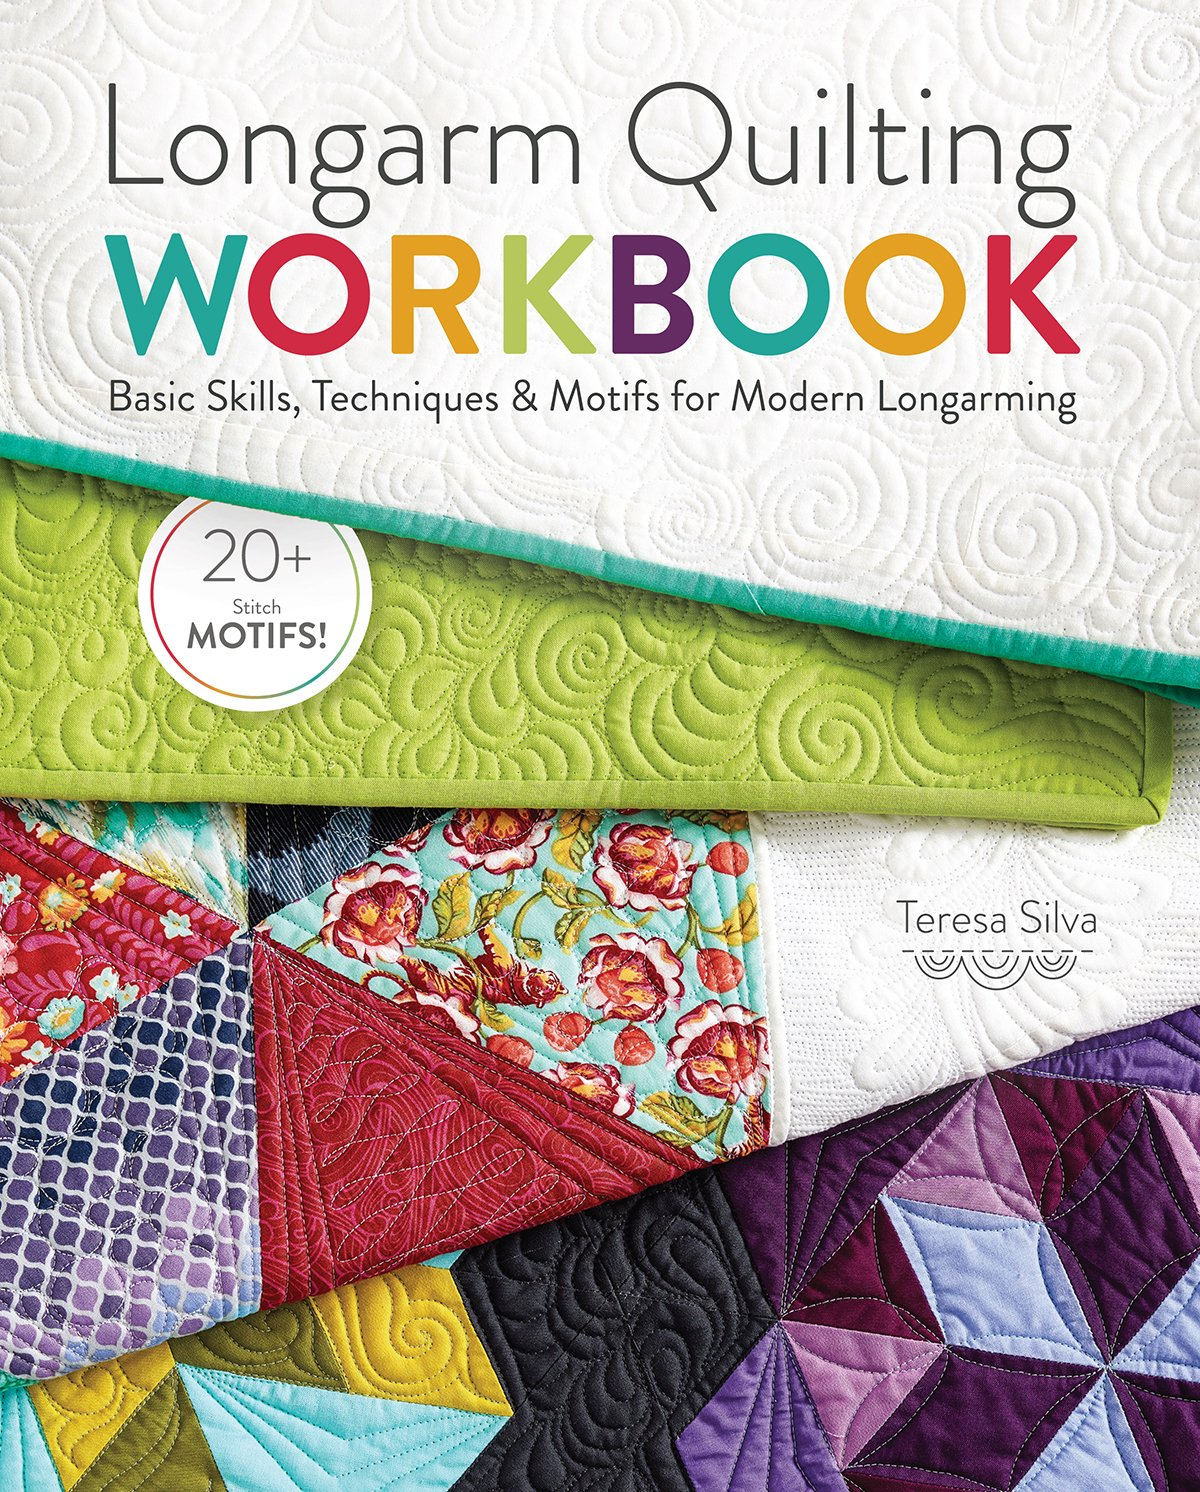 Download Longarm Quilting Workbook: Basic Skills, Techniques & Motifs for Modern Longarming ebook